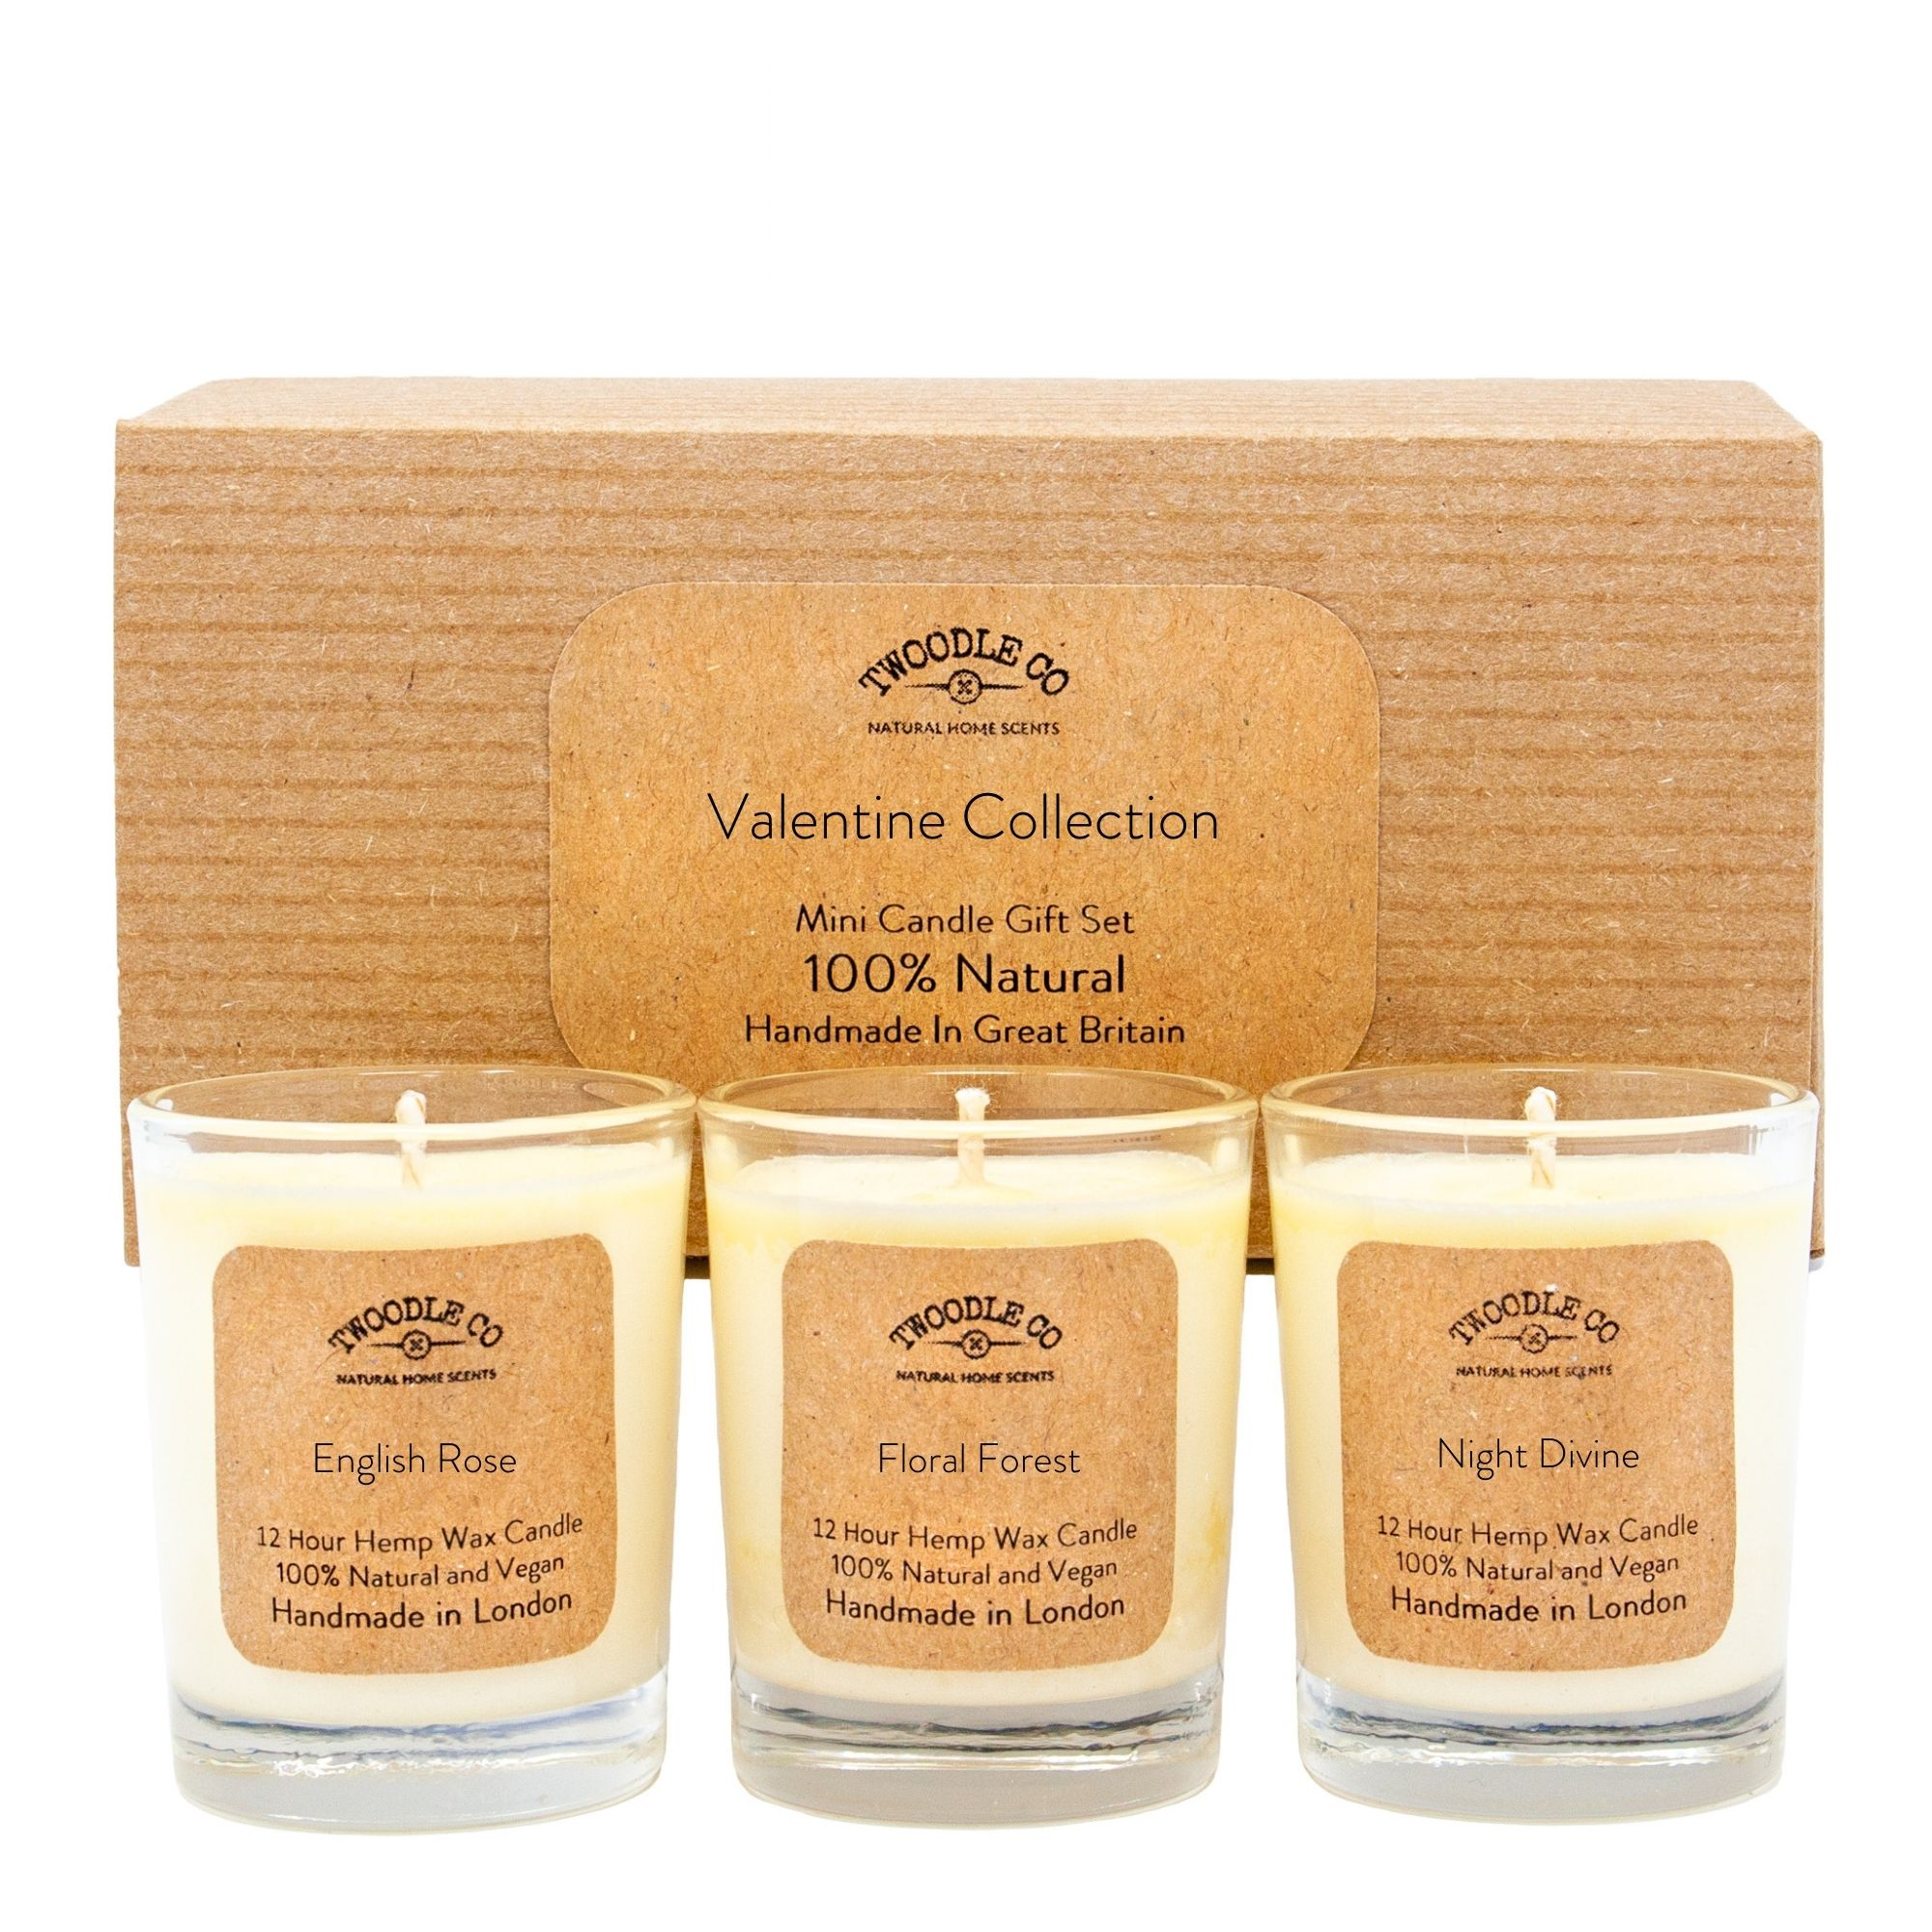 Valentine Collection Mini triple candle Gift Set by twoodle co natural home scents